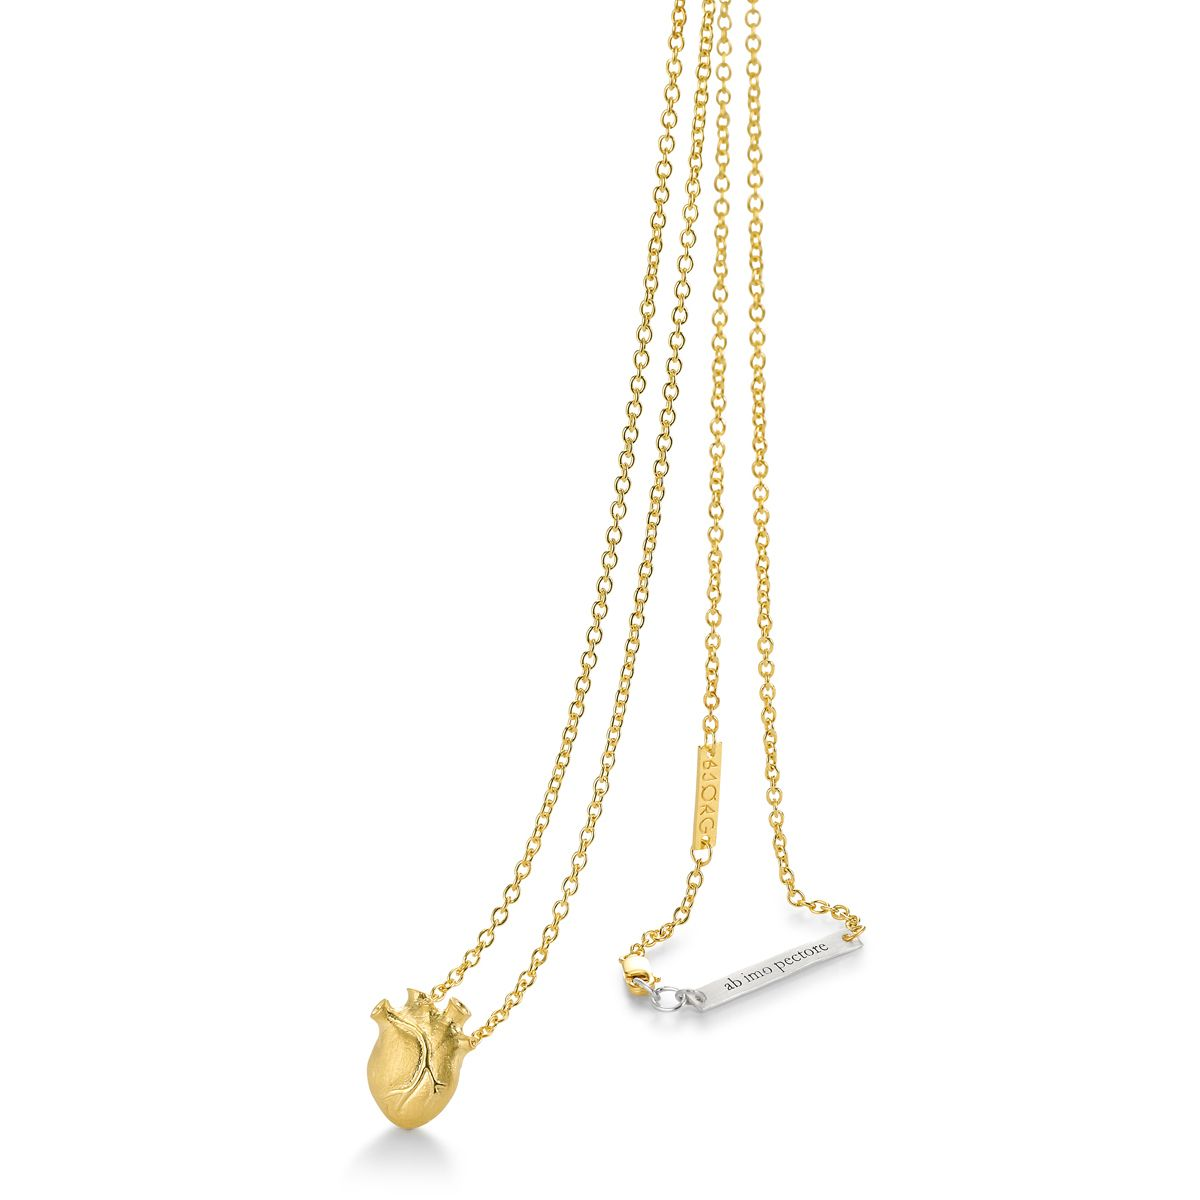 GOLD ANATOMIC HEART necklace